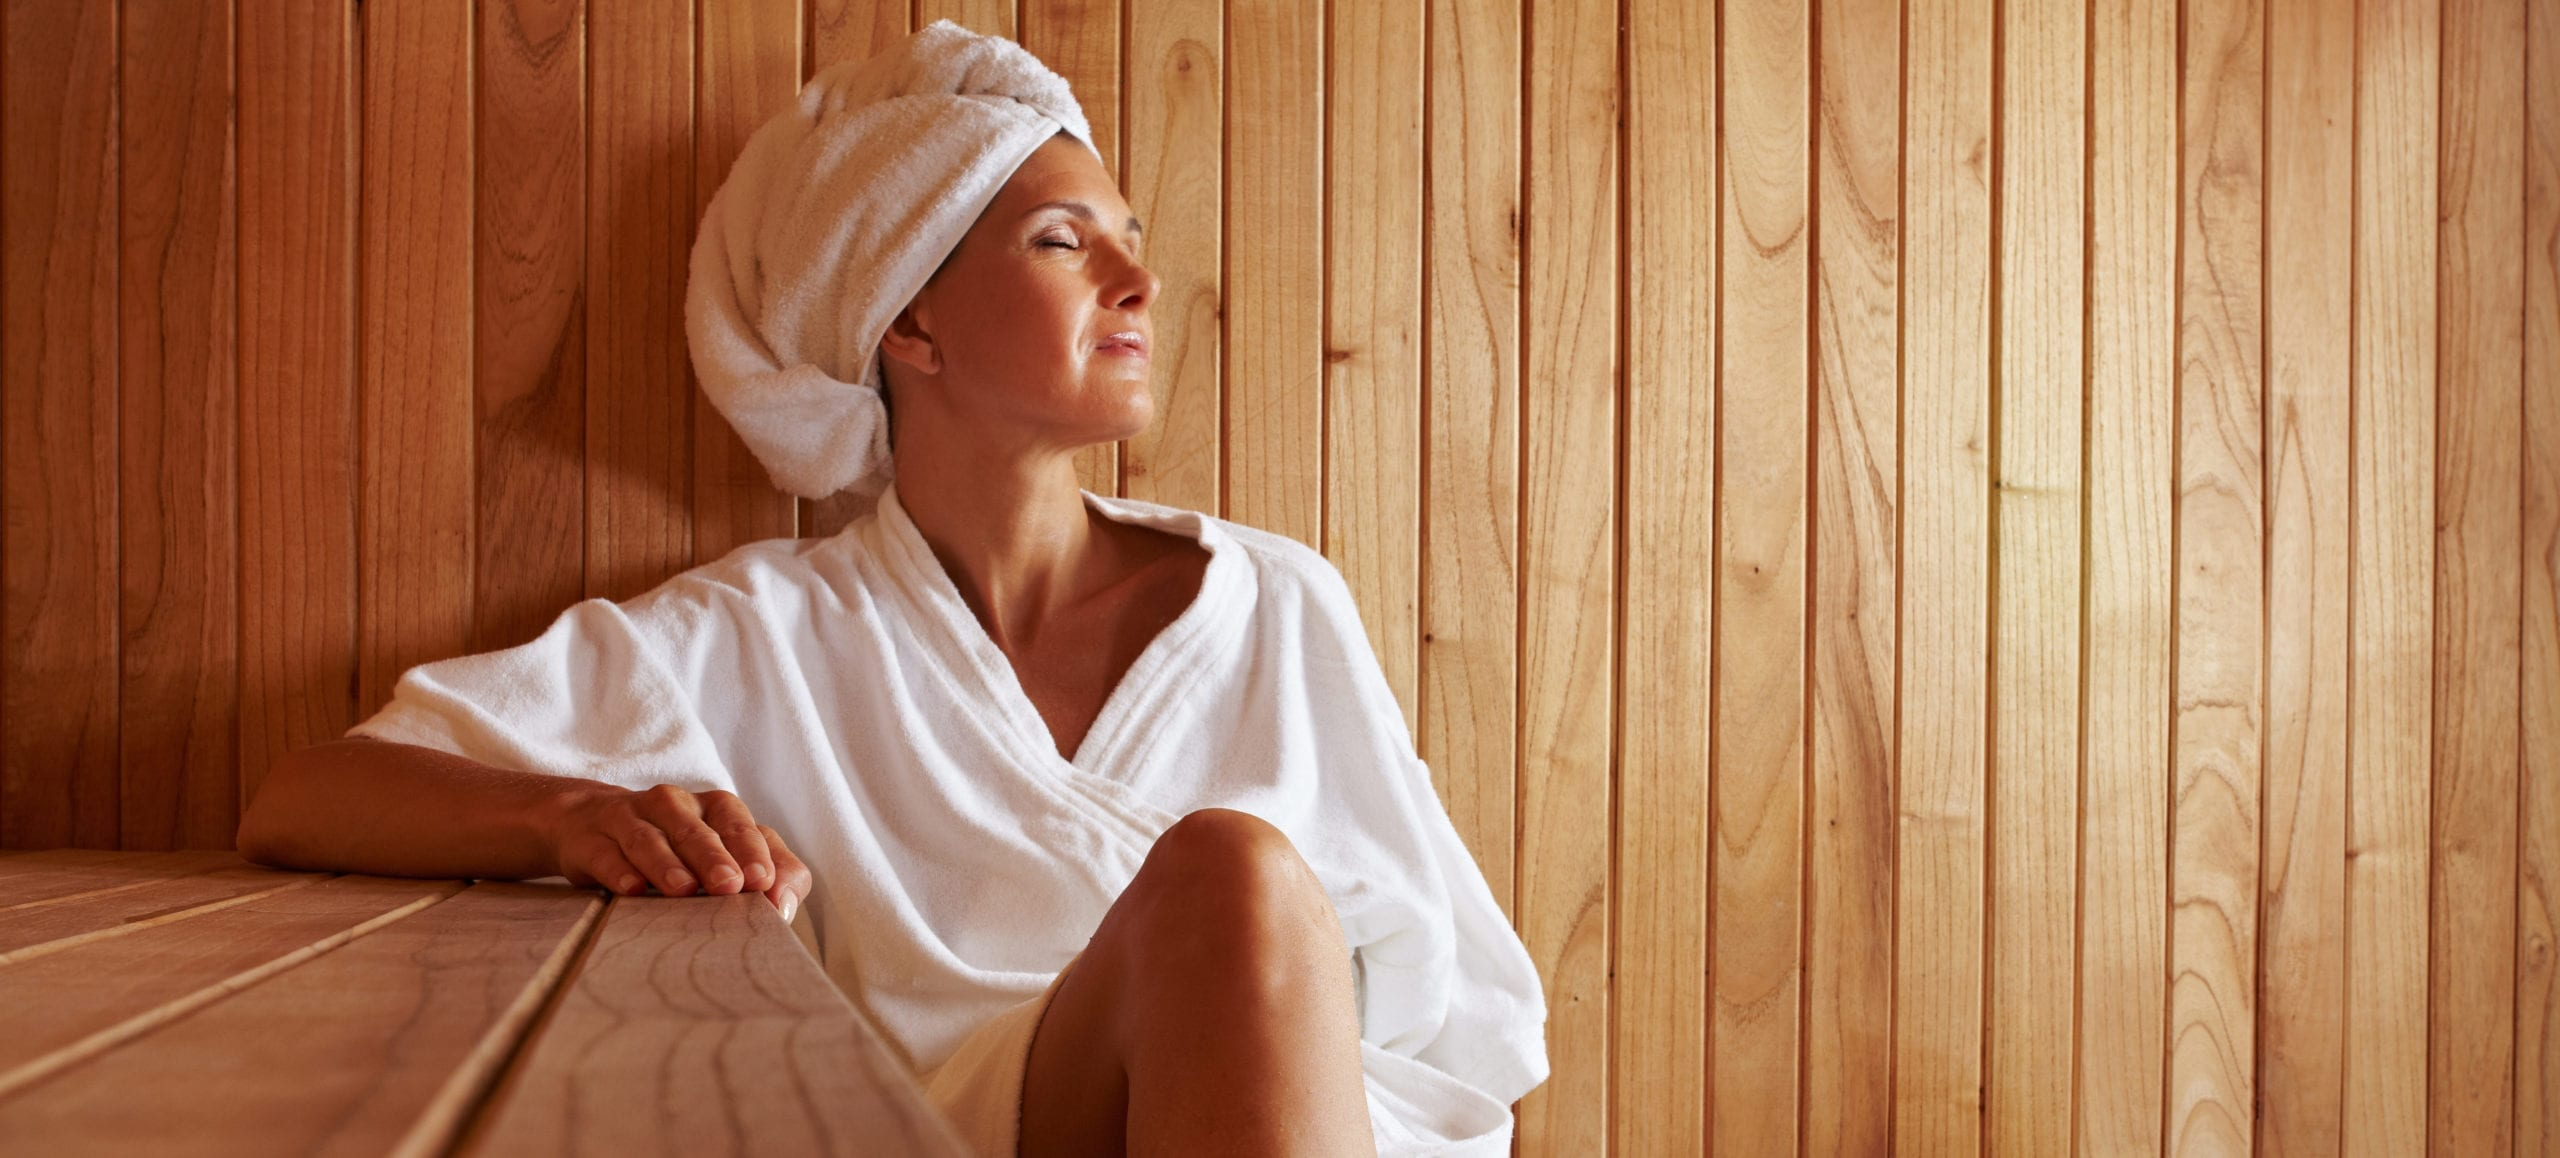 Woman in robe and towel on head in sauna relaxing with her eyes closed